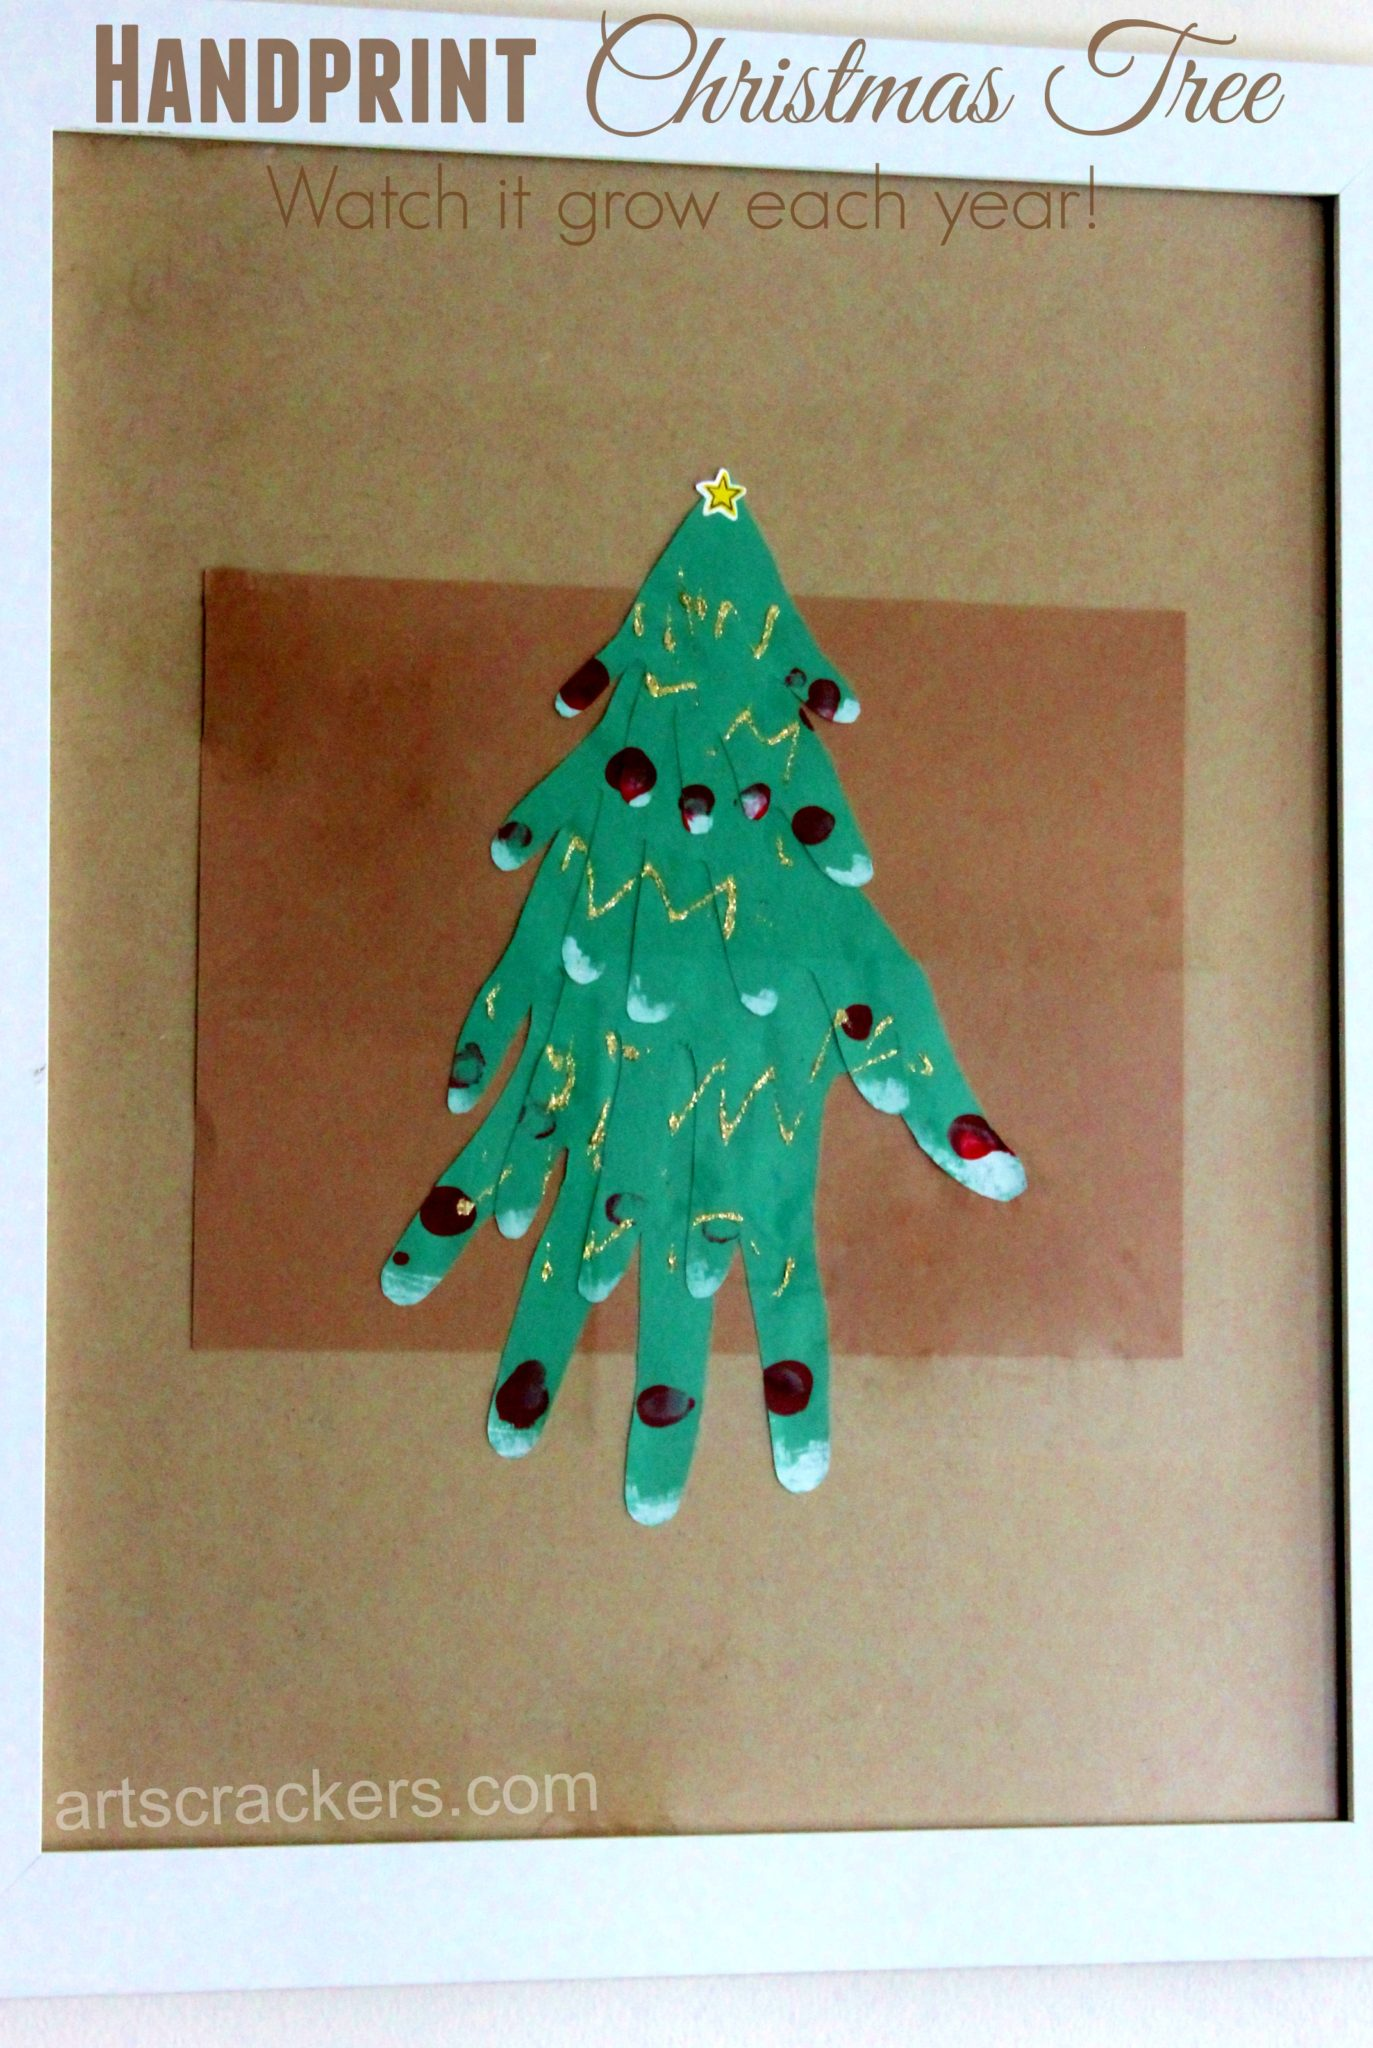 Handprint Christmas Tree Wall Decoration